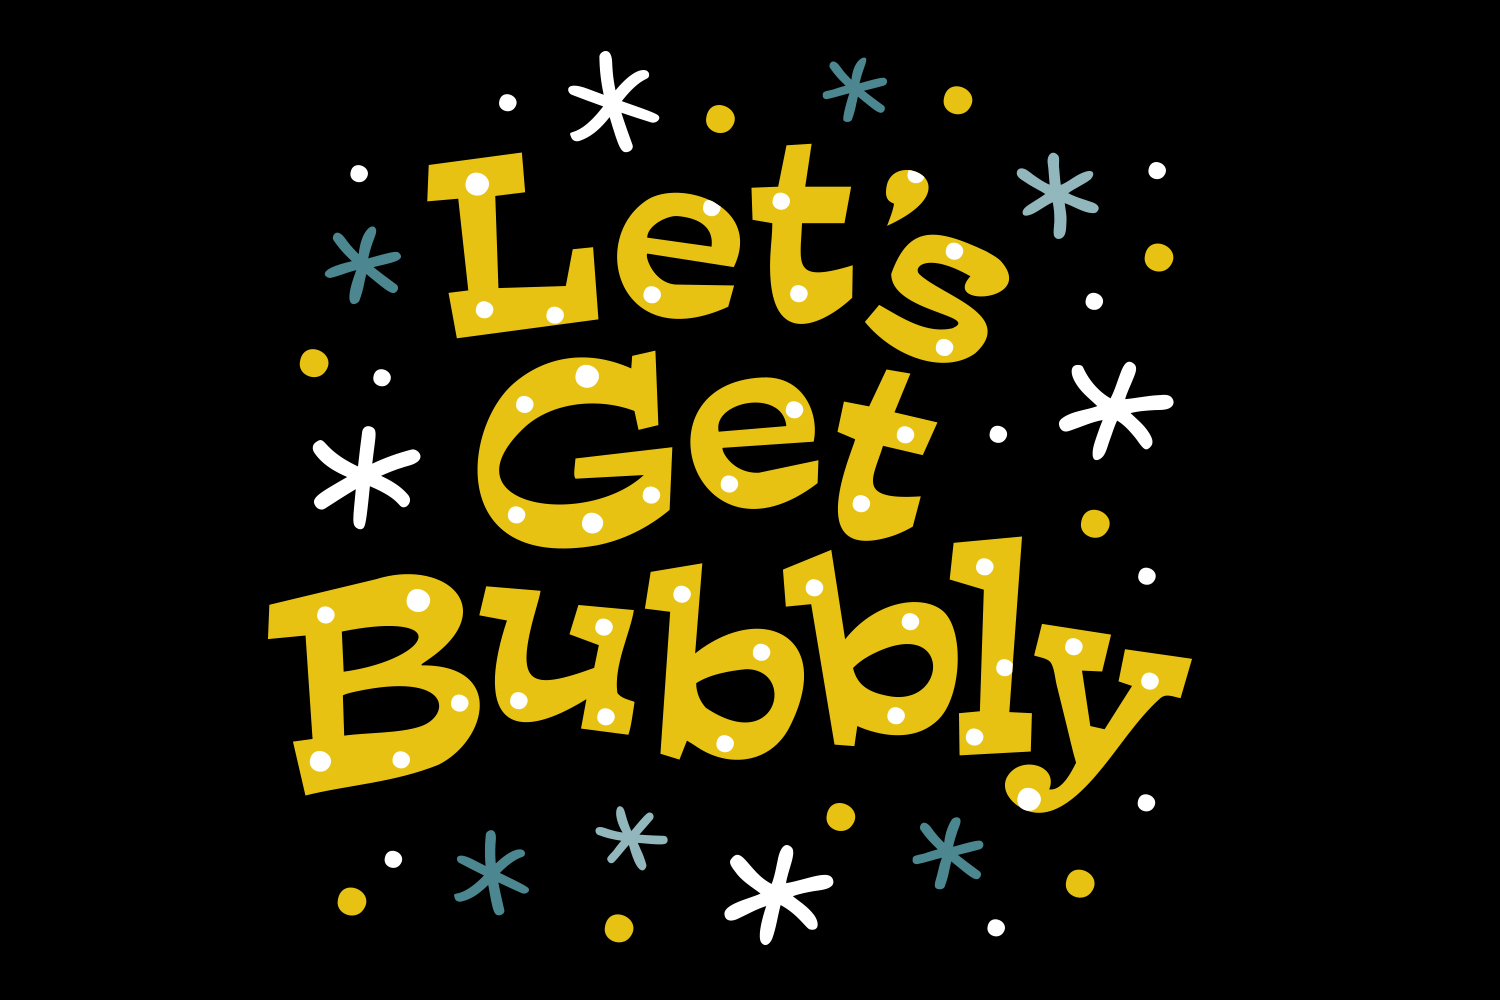 New Years SVG, Lets Get Bubbly SVG, SVG Cut file example image 3